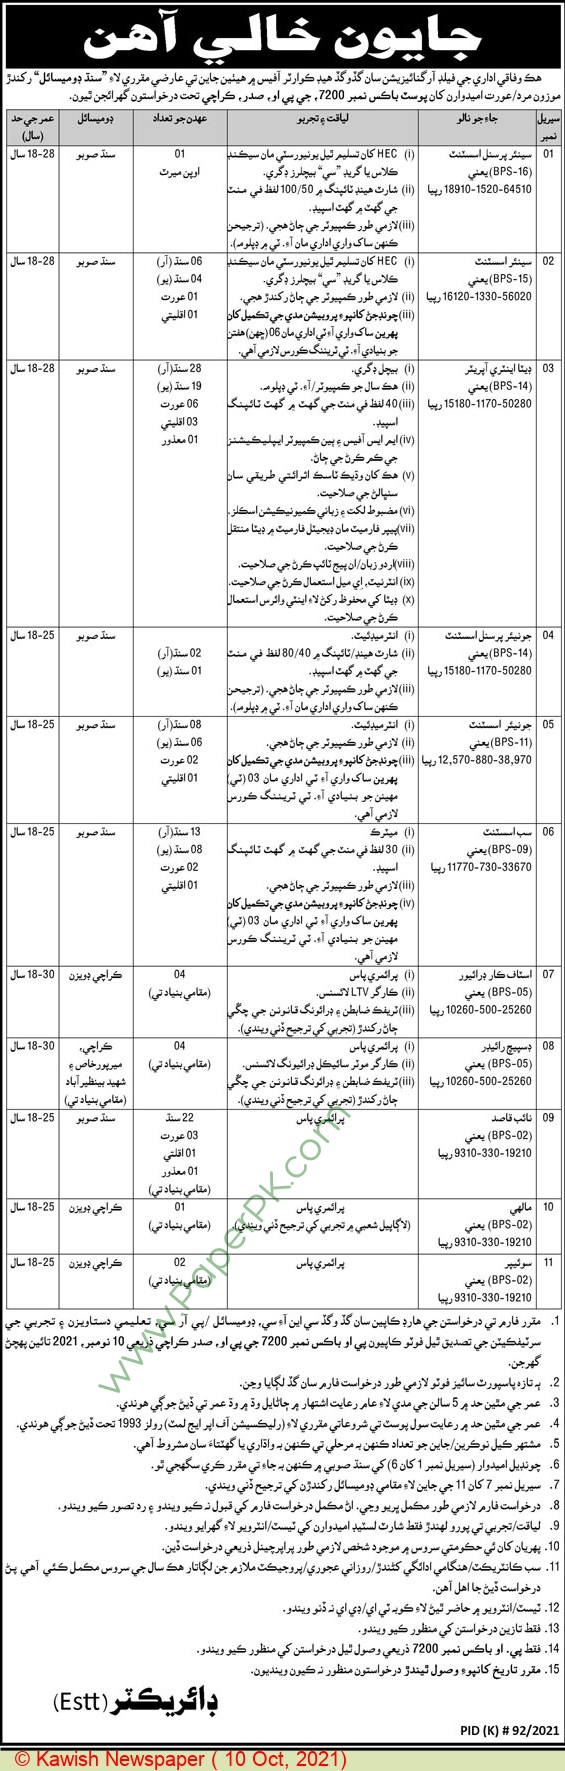 Federal Government Organization jobs newspaper ad for Senior Personal Assistant in Karachi on 2021-10-10